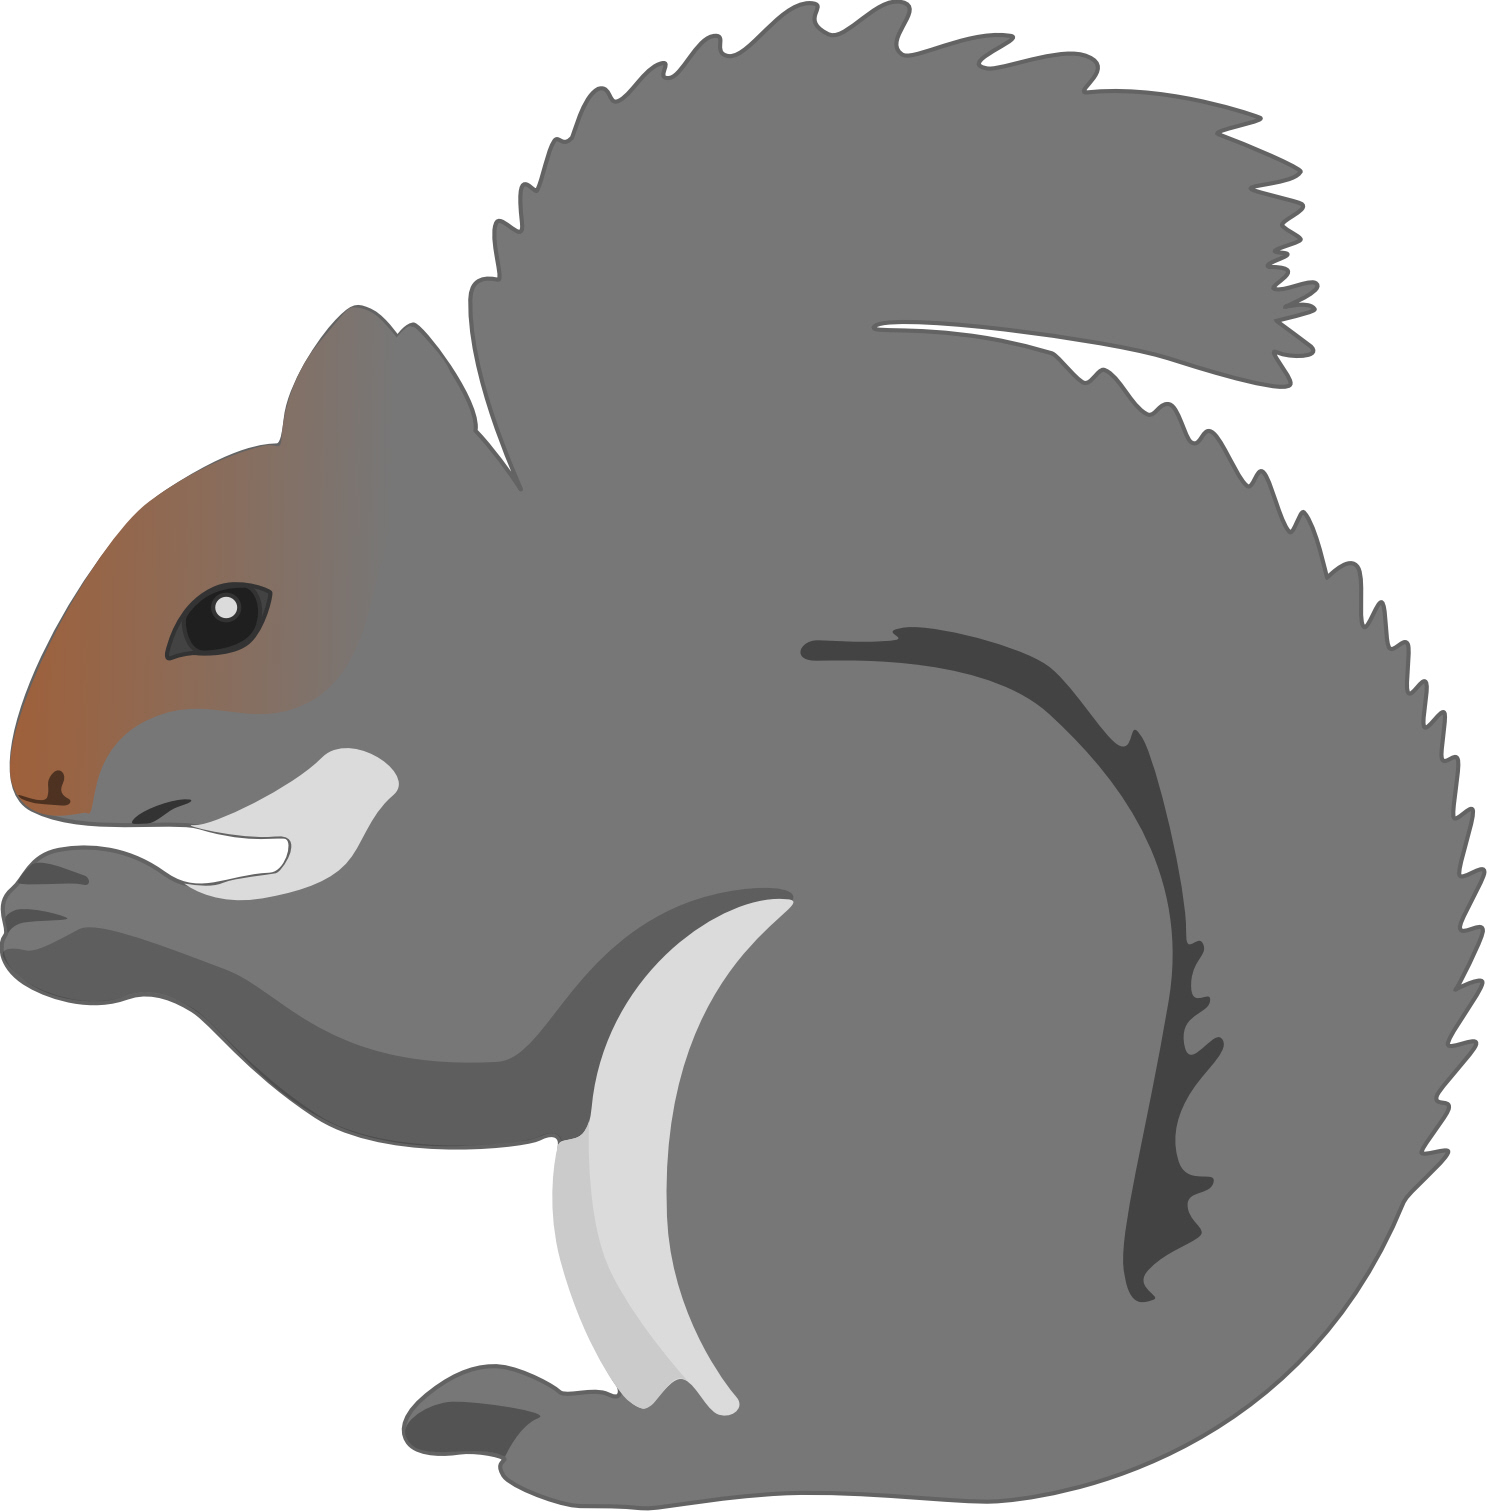 Gray Squirrel clipart Squirrel global 'Grey Suggestions understand